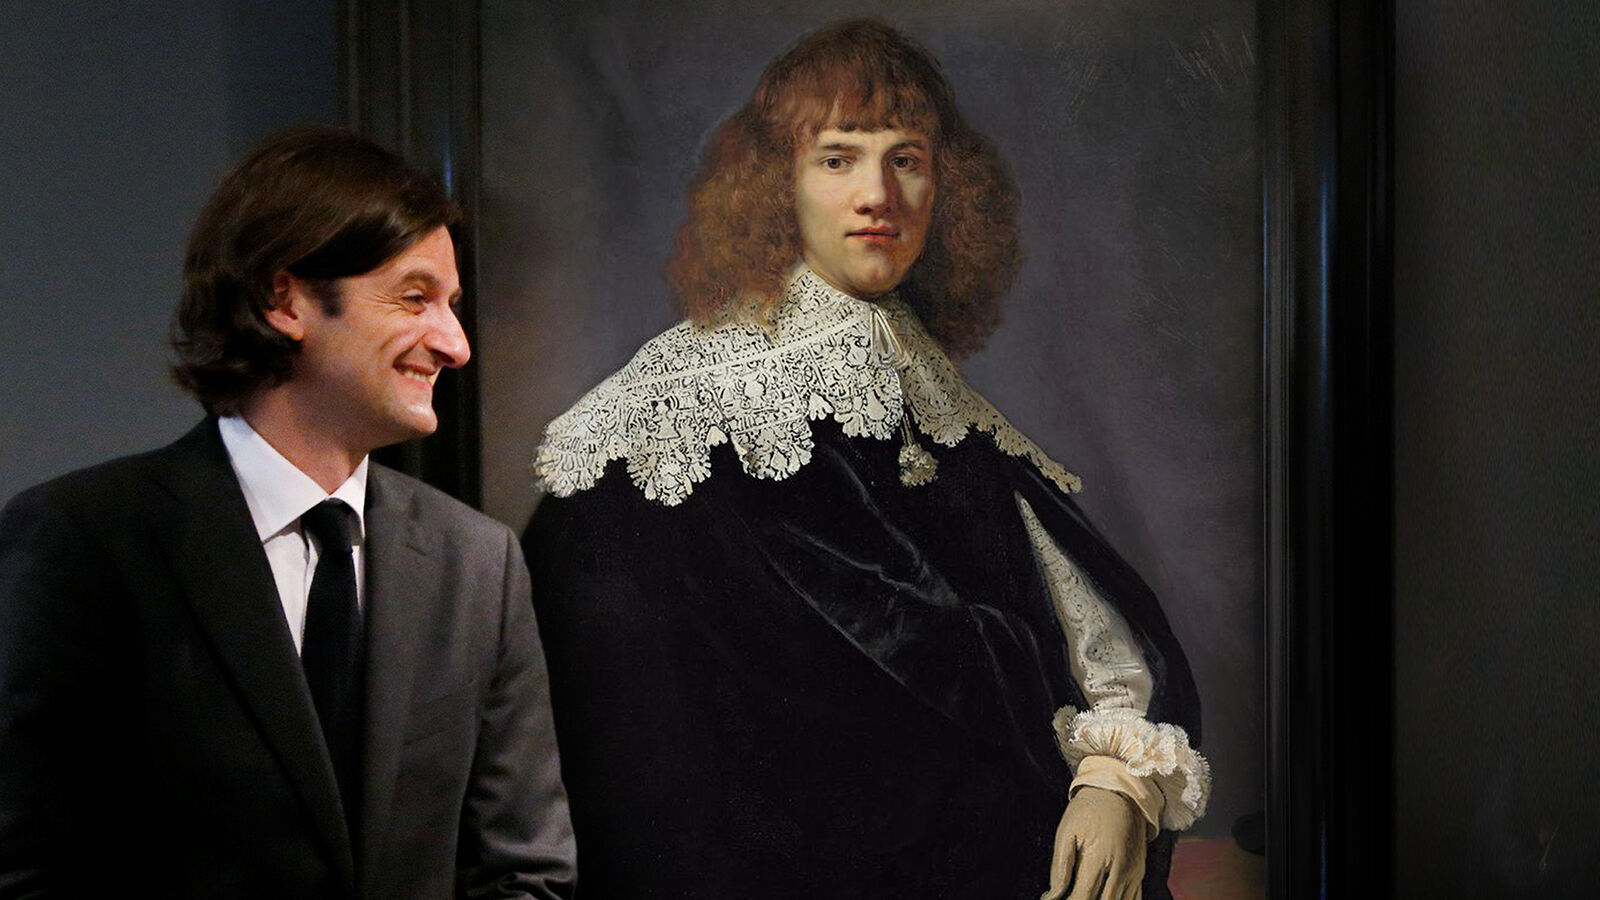 Movie review: How does it feel to own a Rembrandt? Or 15 of them? Inside the collectors' quest